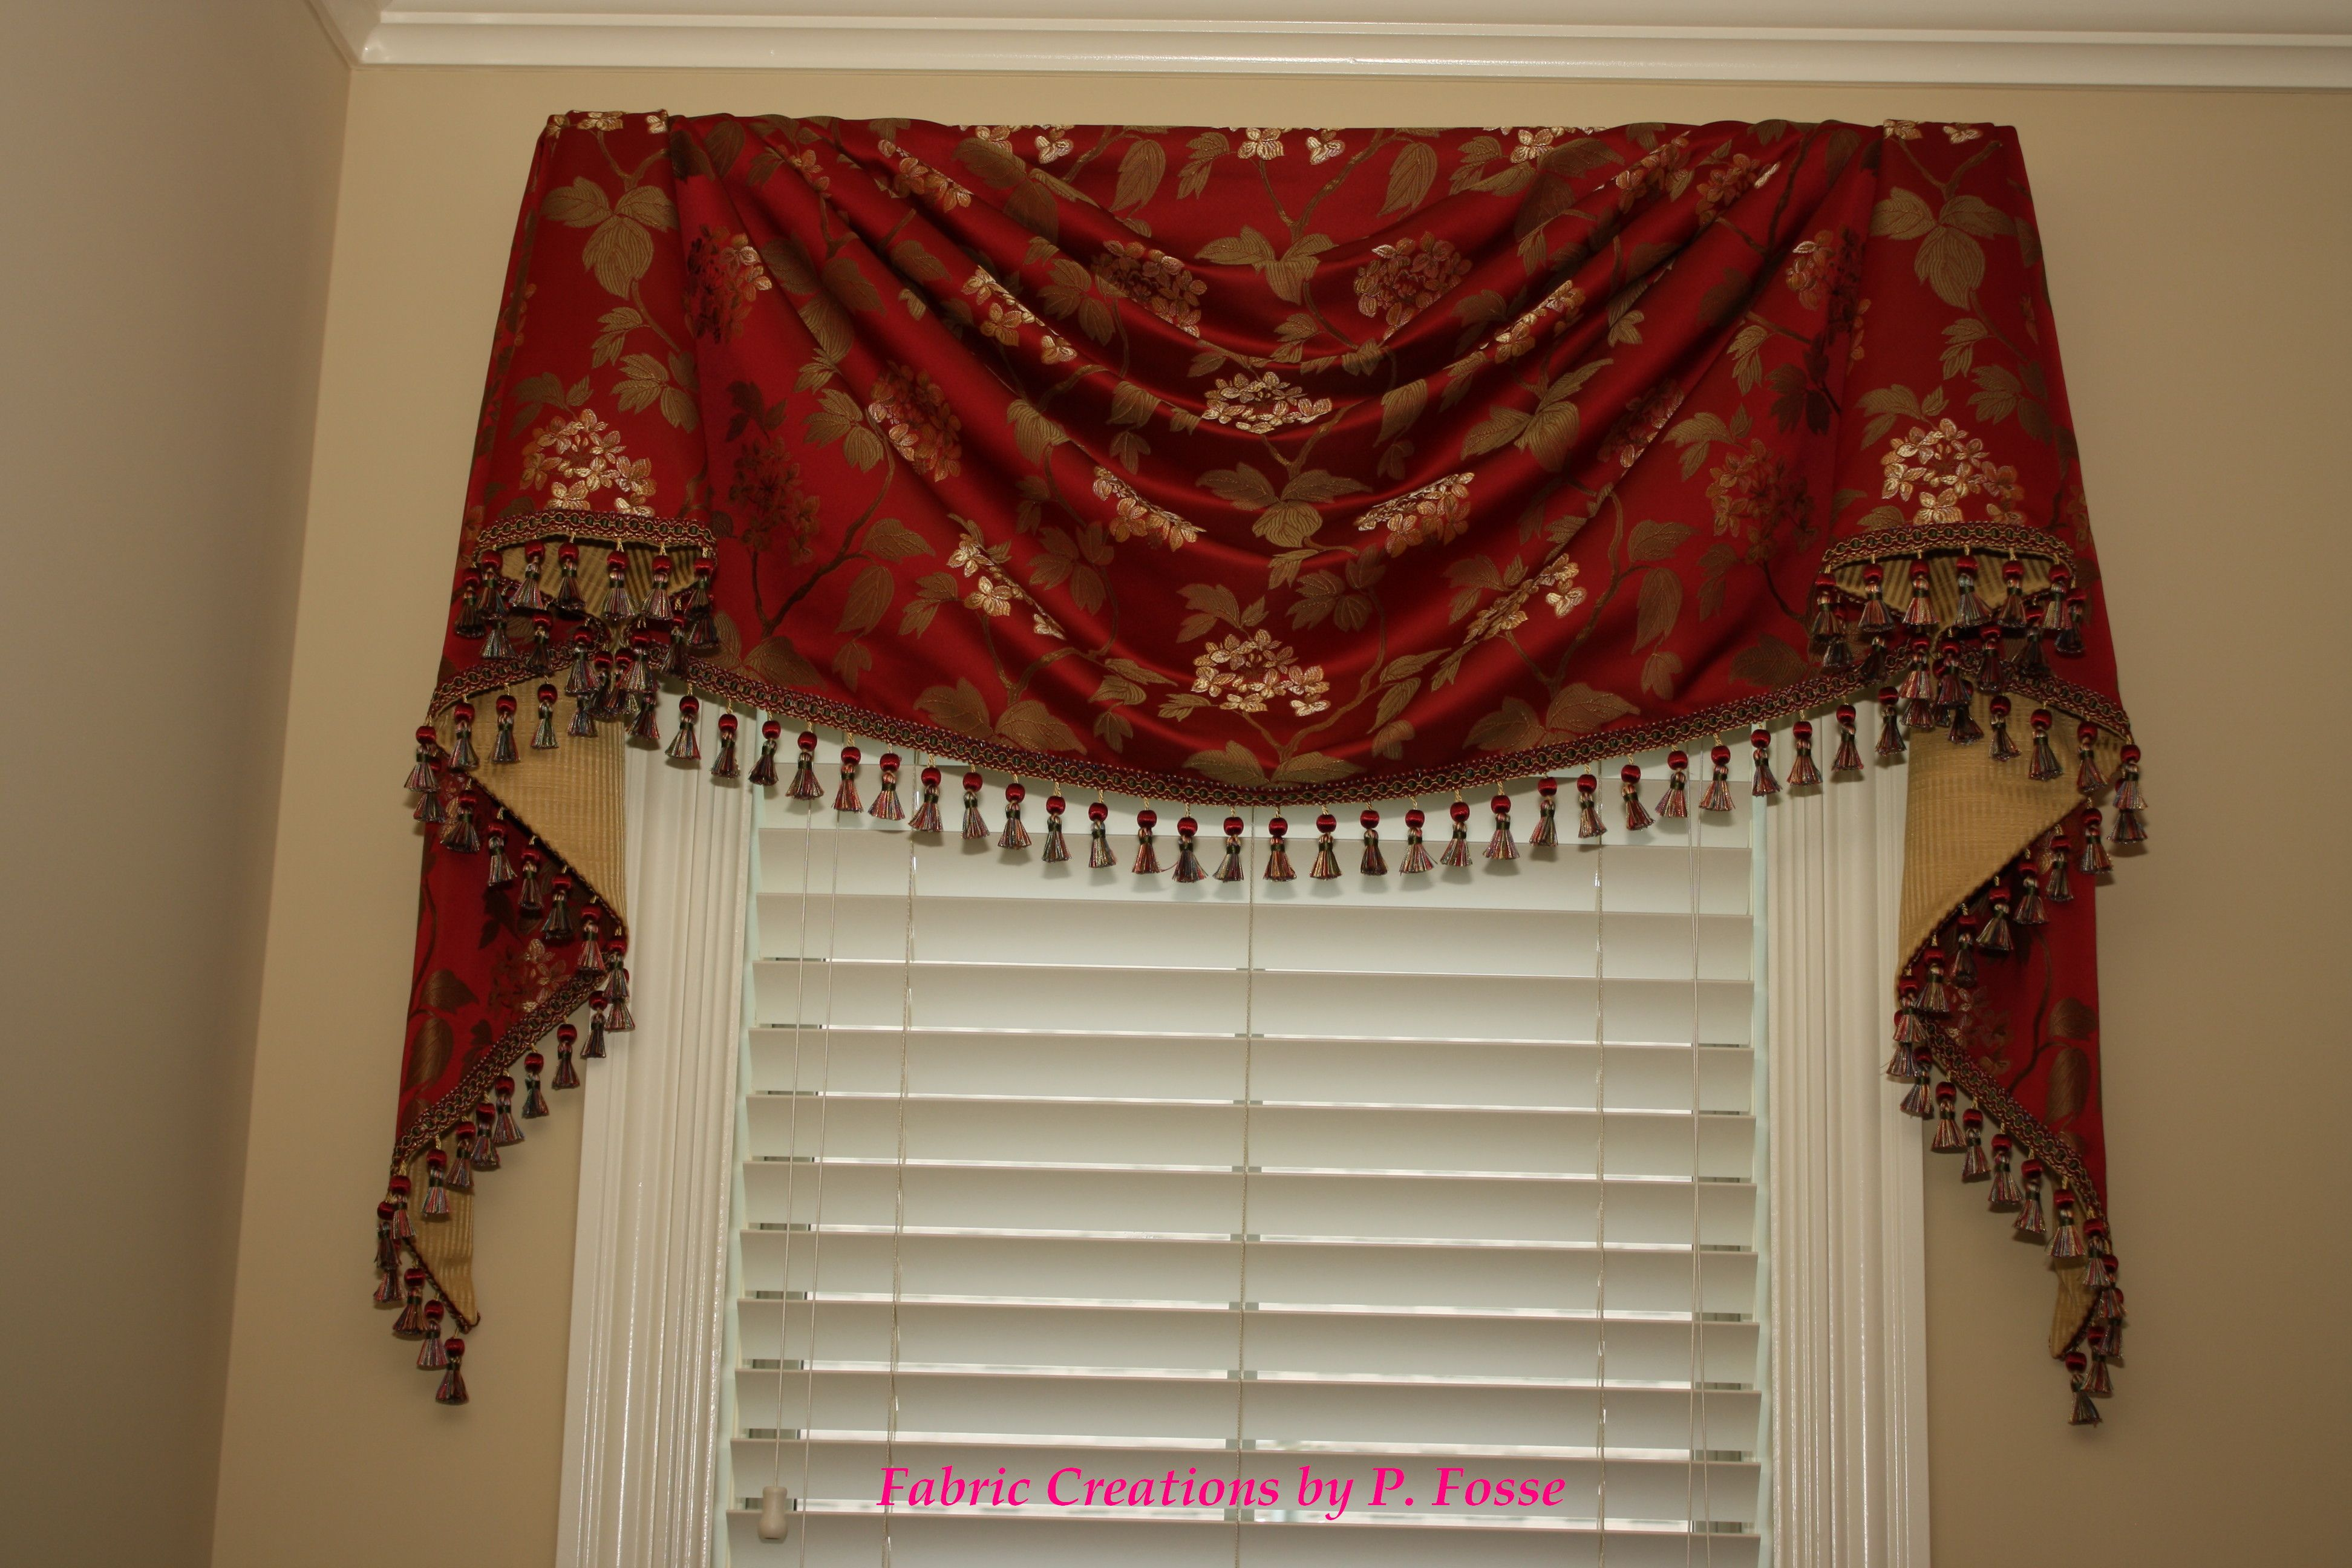 M 39 Fay 39 S Empire Swag By Fabric Creations Curtains Swags